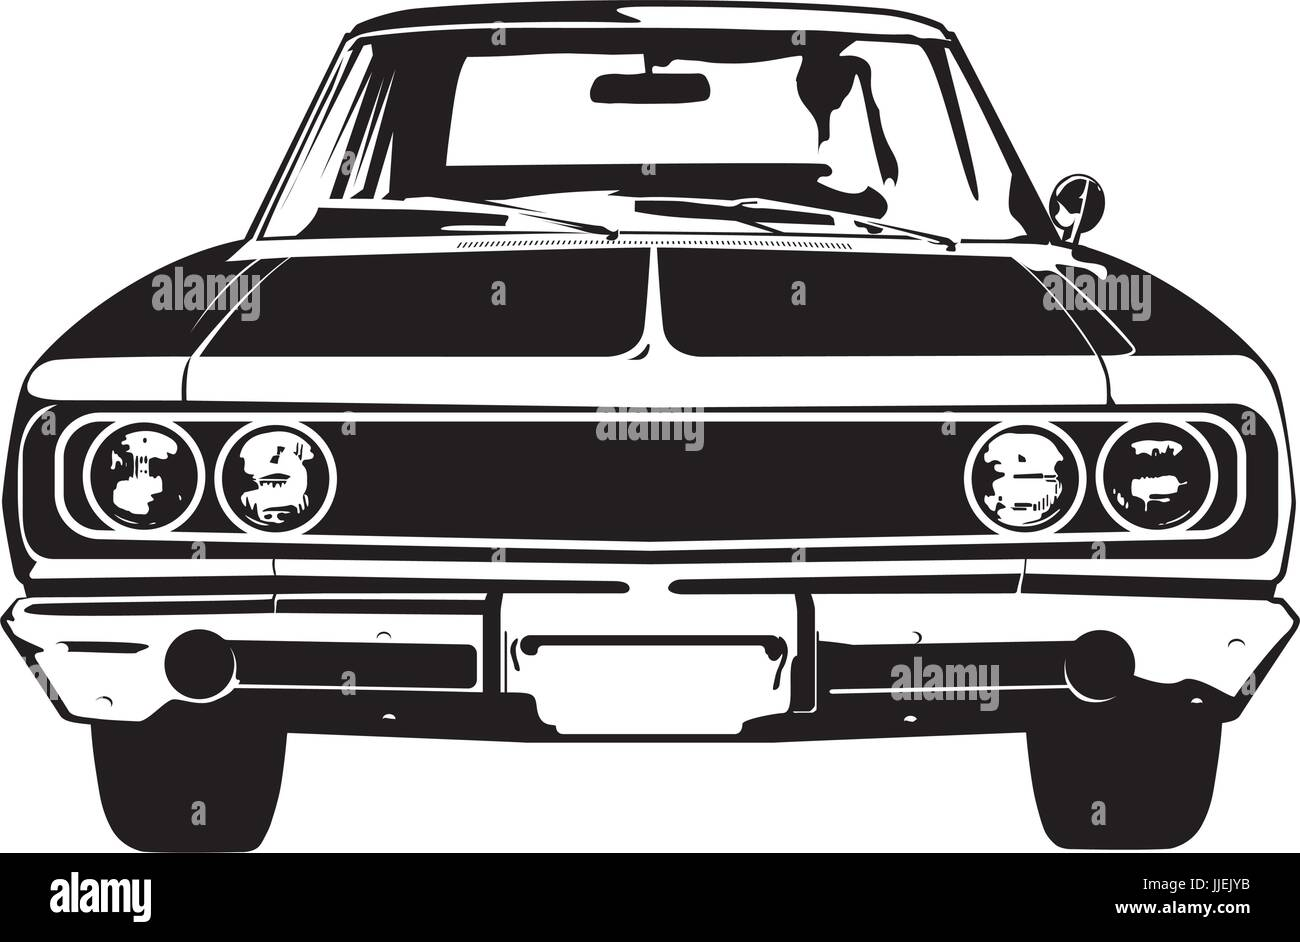 Front view silhouette of vintage american muscle car - Stock Image